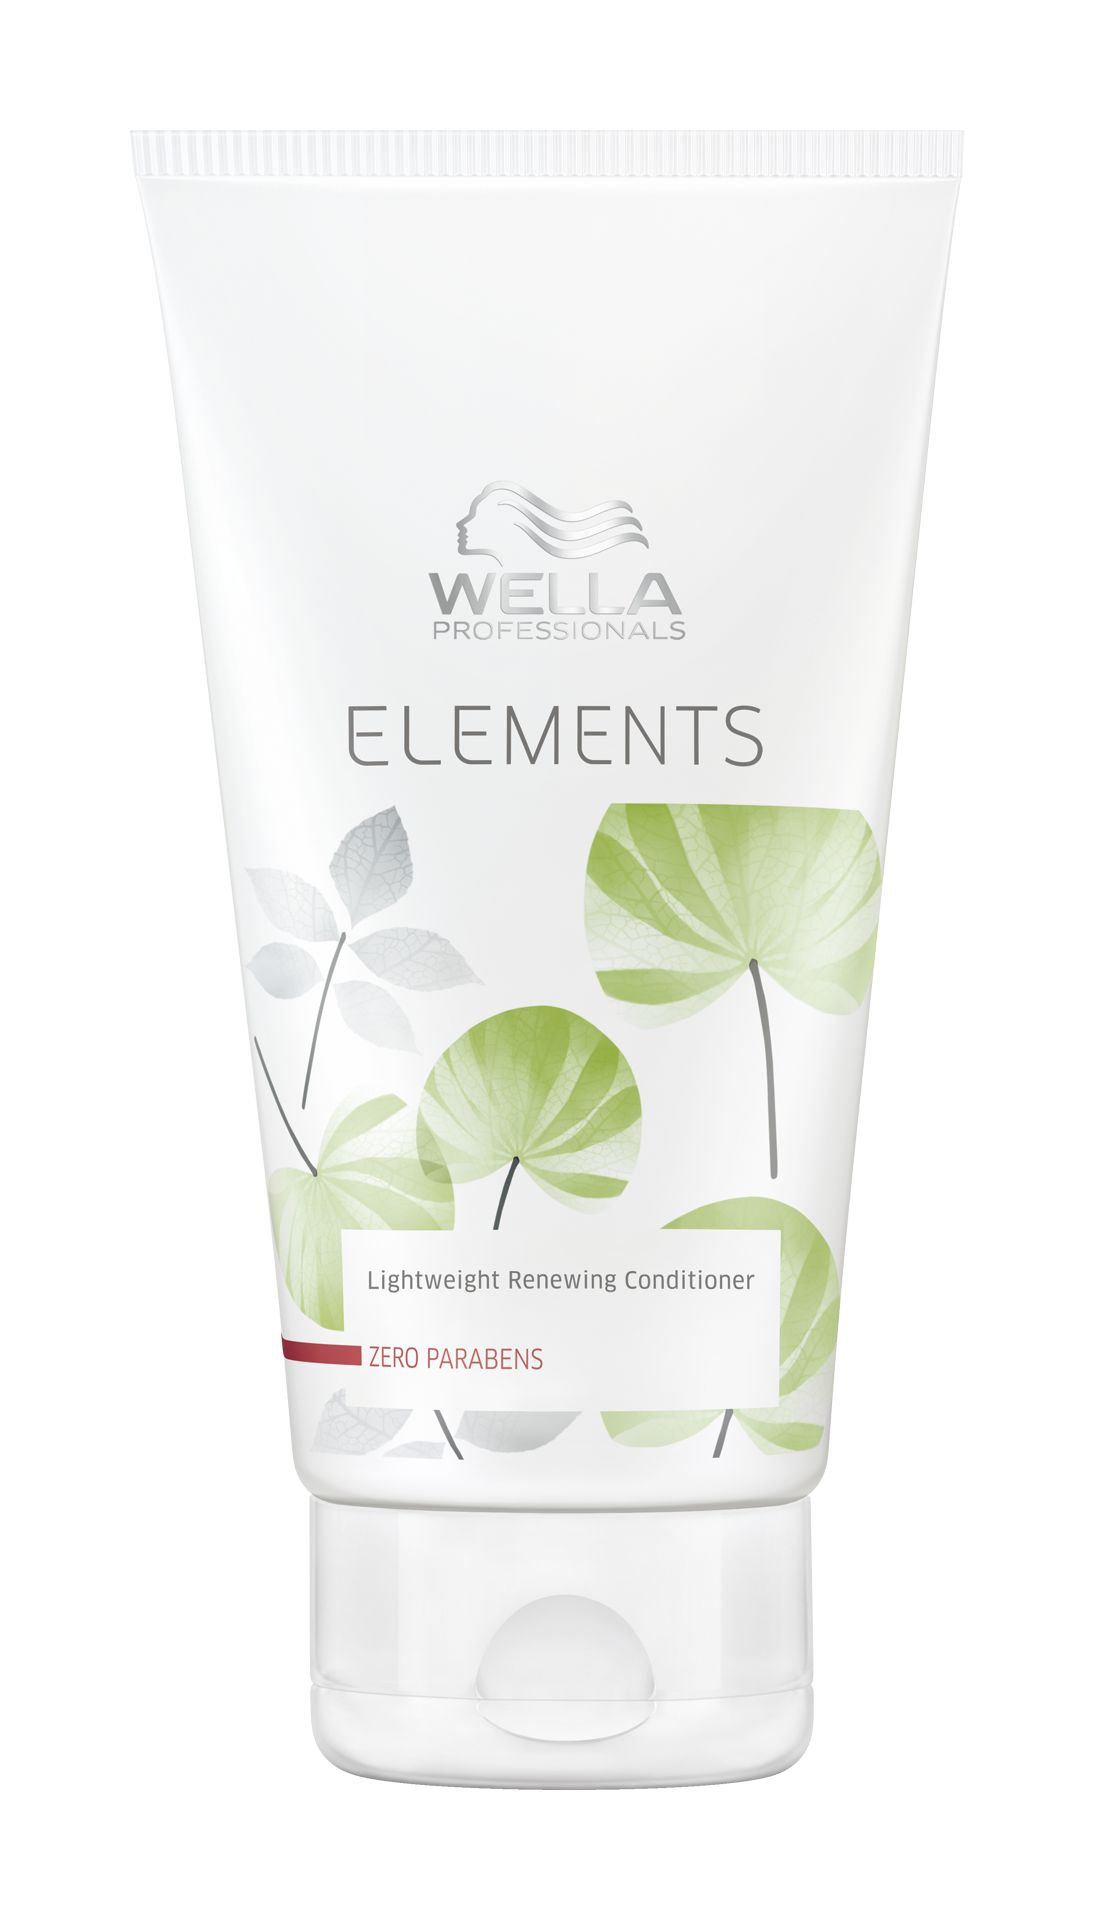 WELLA Elements Lightweight Renewing Co